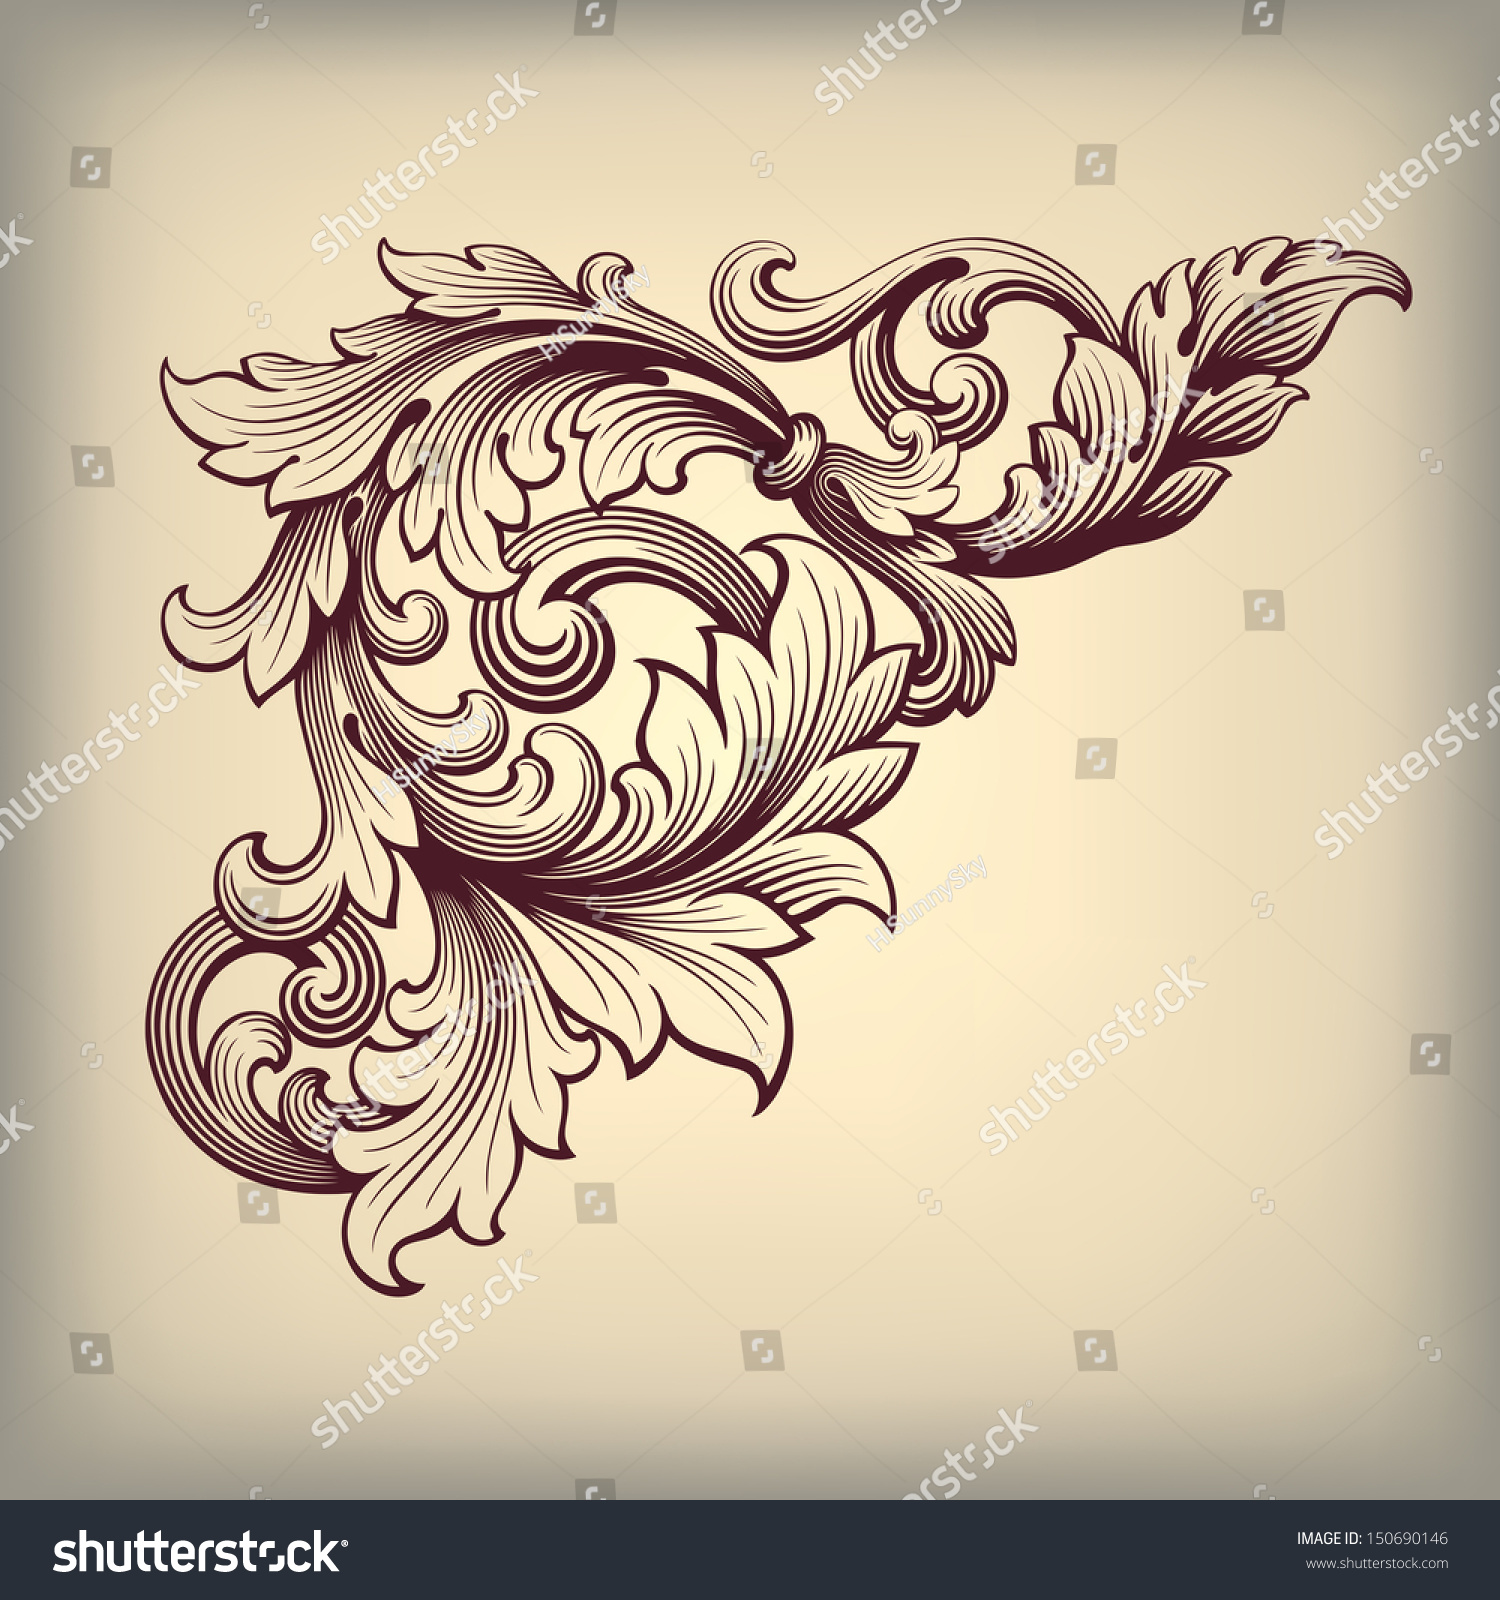 Antique Scroll Design: Vector Vintage Baroque Scroll Design Frame Stock Vector